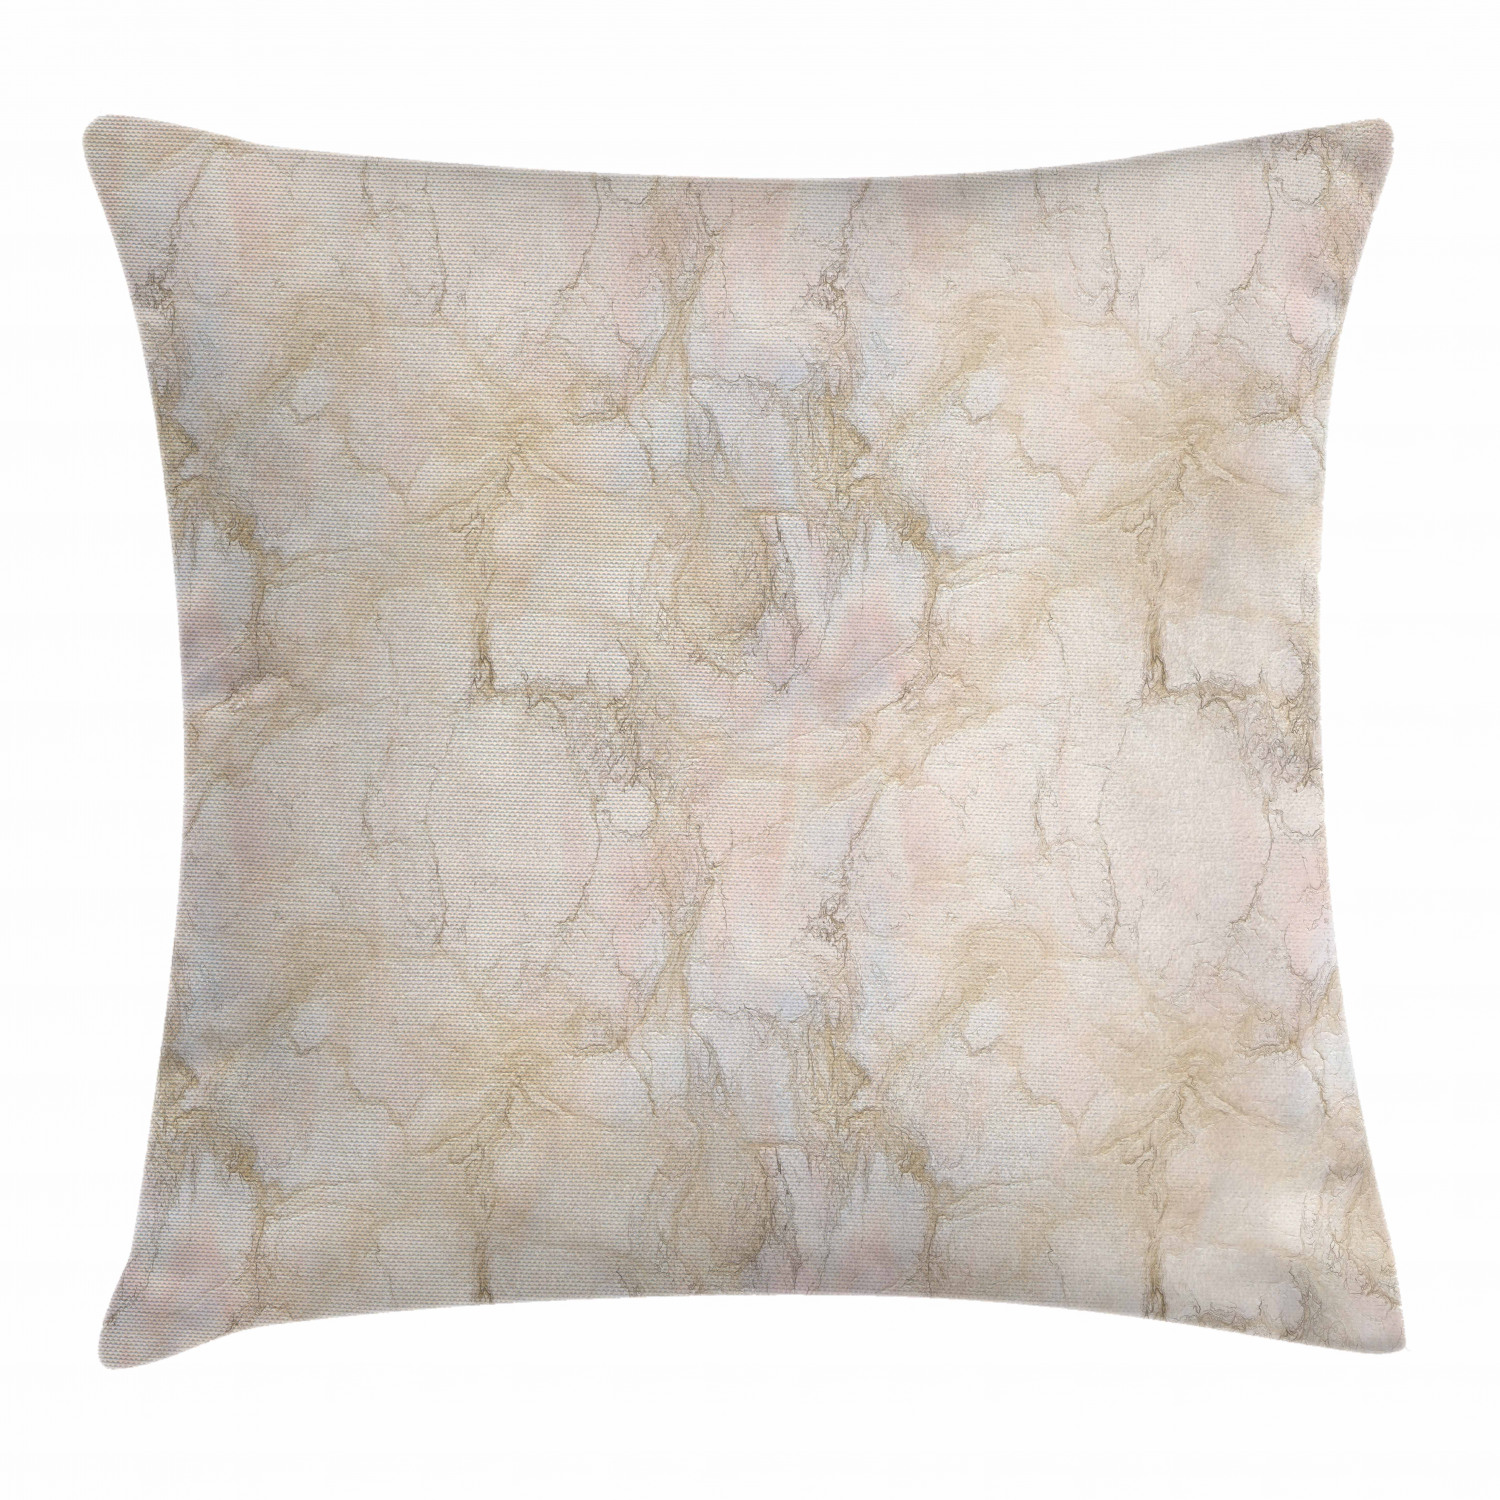 marble throw pillow cushion cover pink and peach marble background with crack patterns architecture building material decorative square accent pillow case 20 x 20 inches pink peach by ambesonne walmart com walmart com walmart